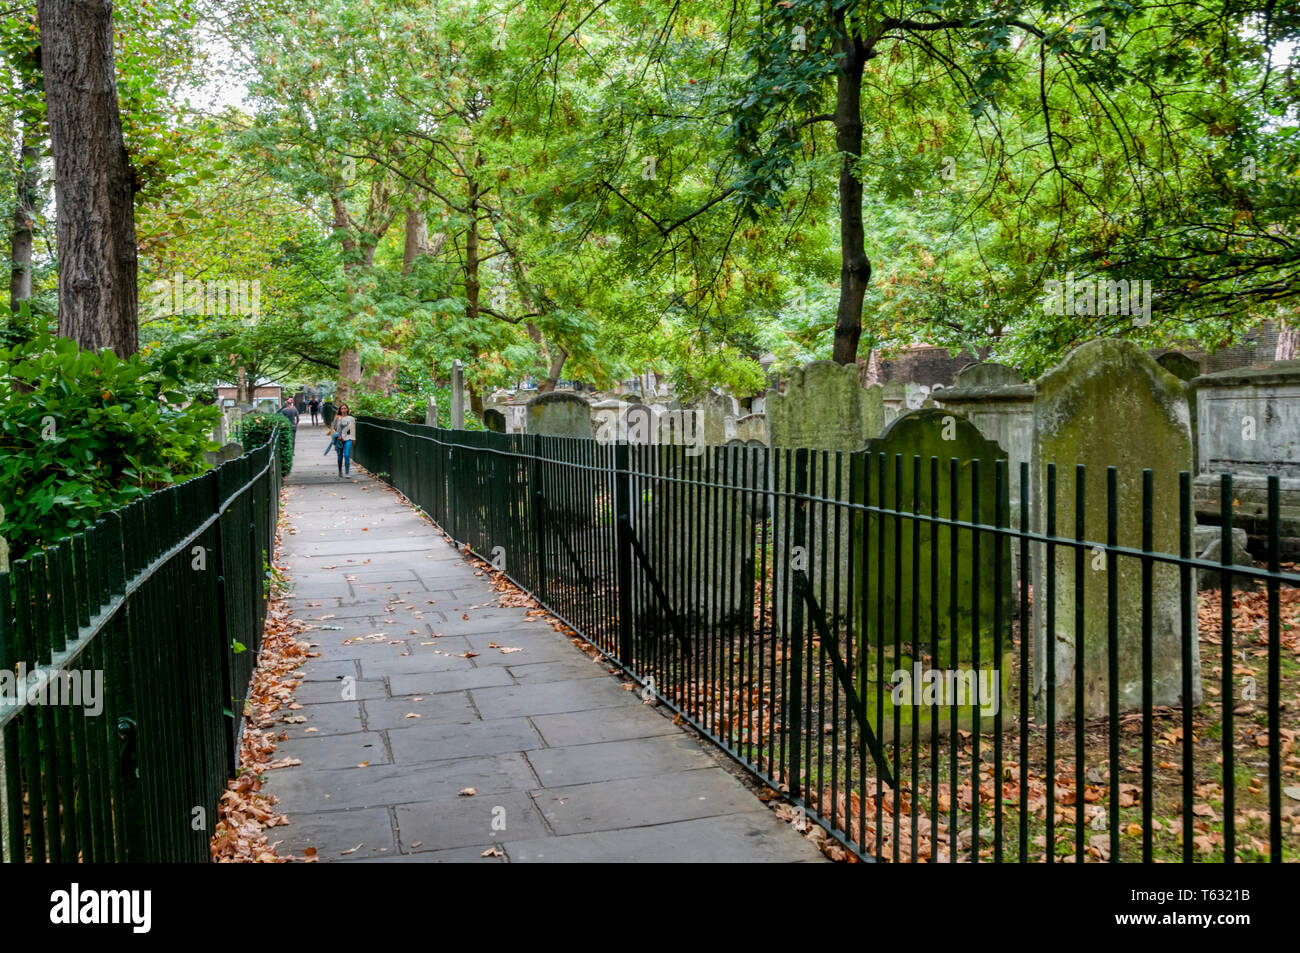 The former burial ground of Bunhill Fields in Islington, North London, is listed Grade I on the Register of Historic Parks and Gardens. - Stock Image